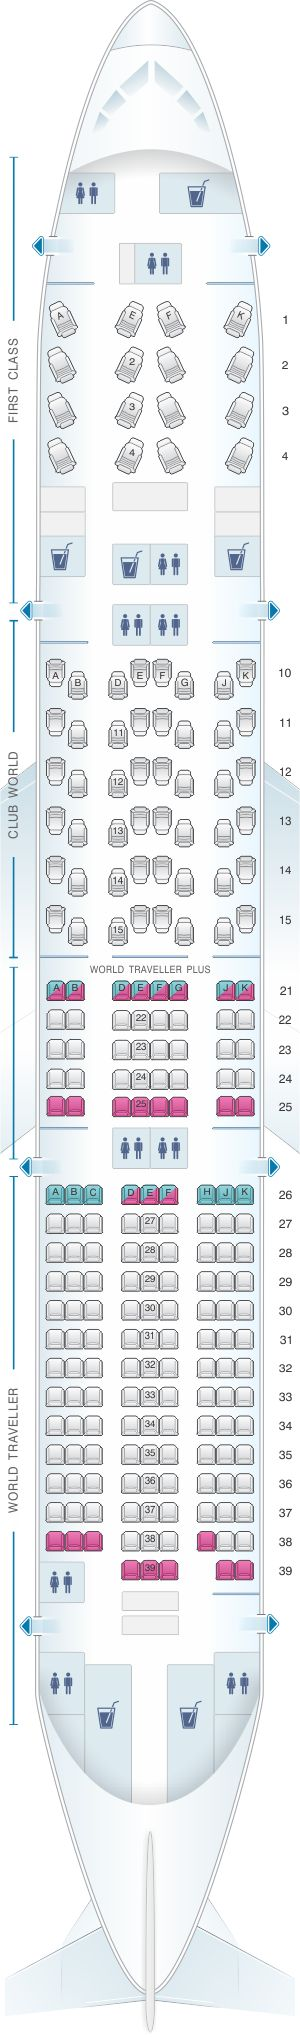 Seat Map British Airways Boeing B777 200 four class